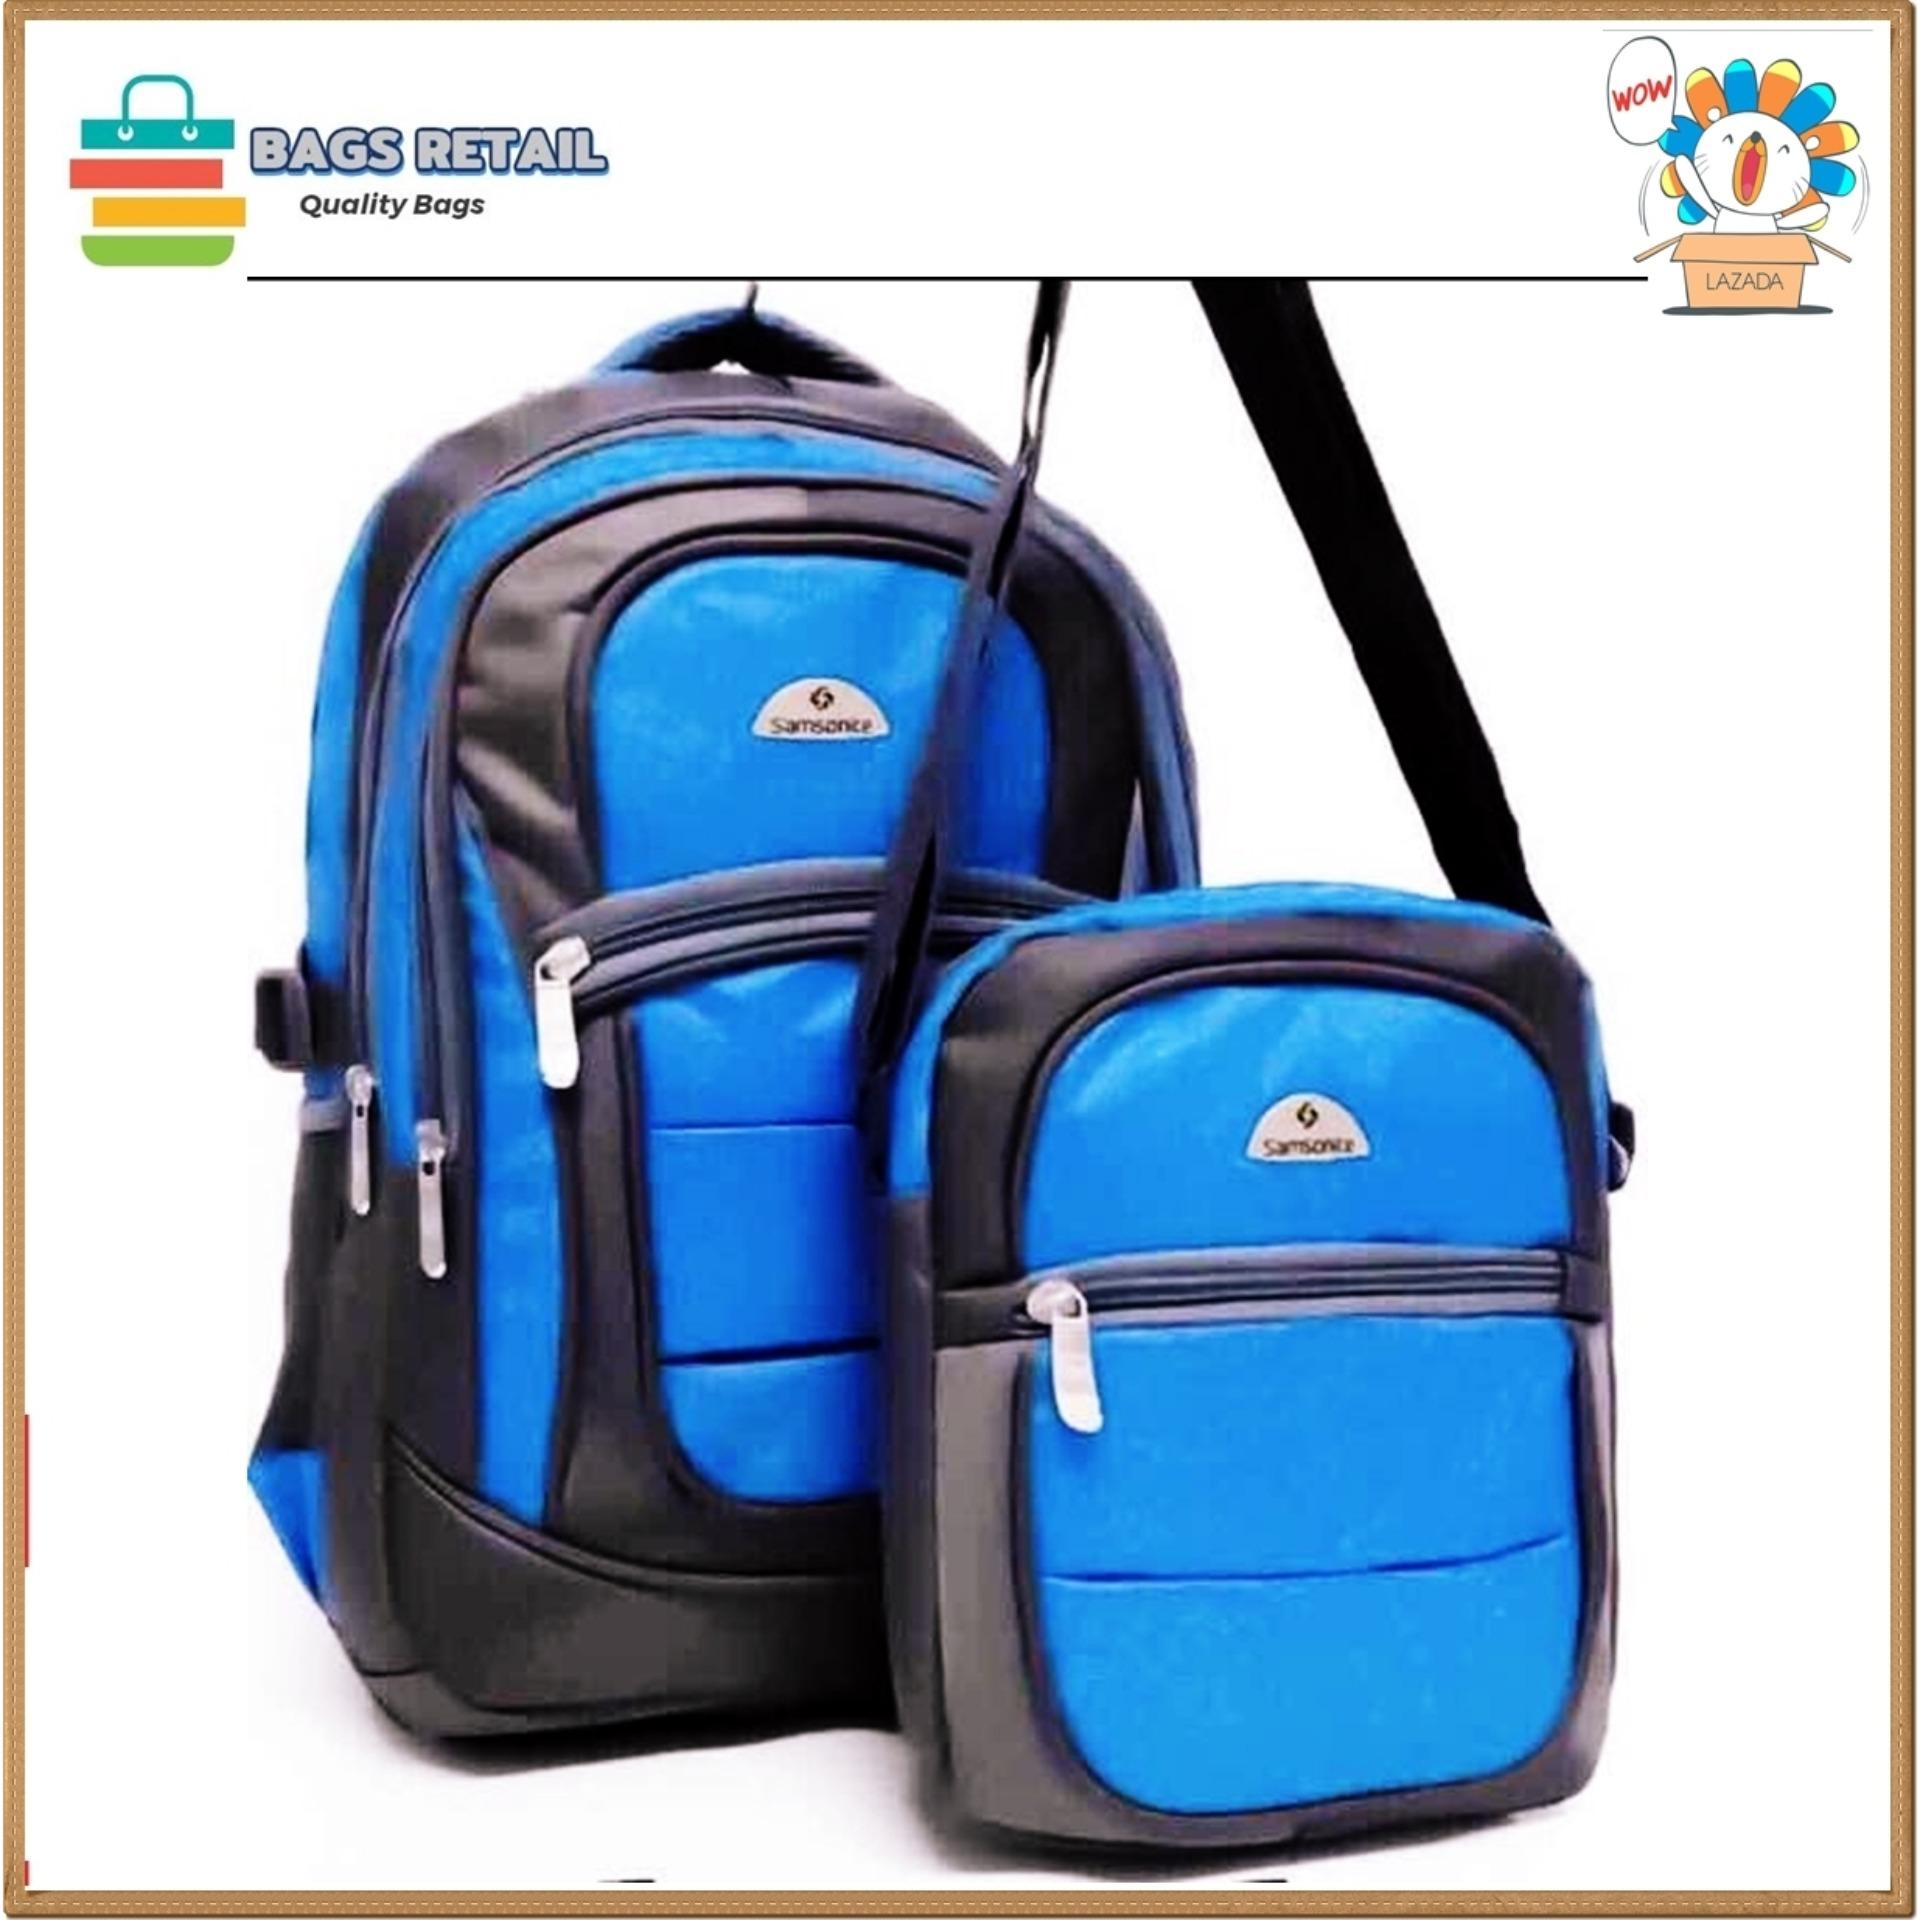 4178b7b87 Backpacks for Men for sale - Mens Backpacks Online Deals & Prices in  Philippines | Lazada.com.ph